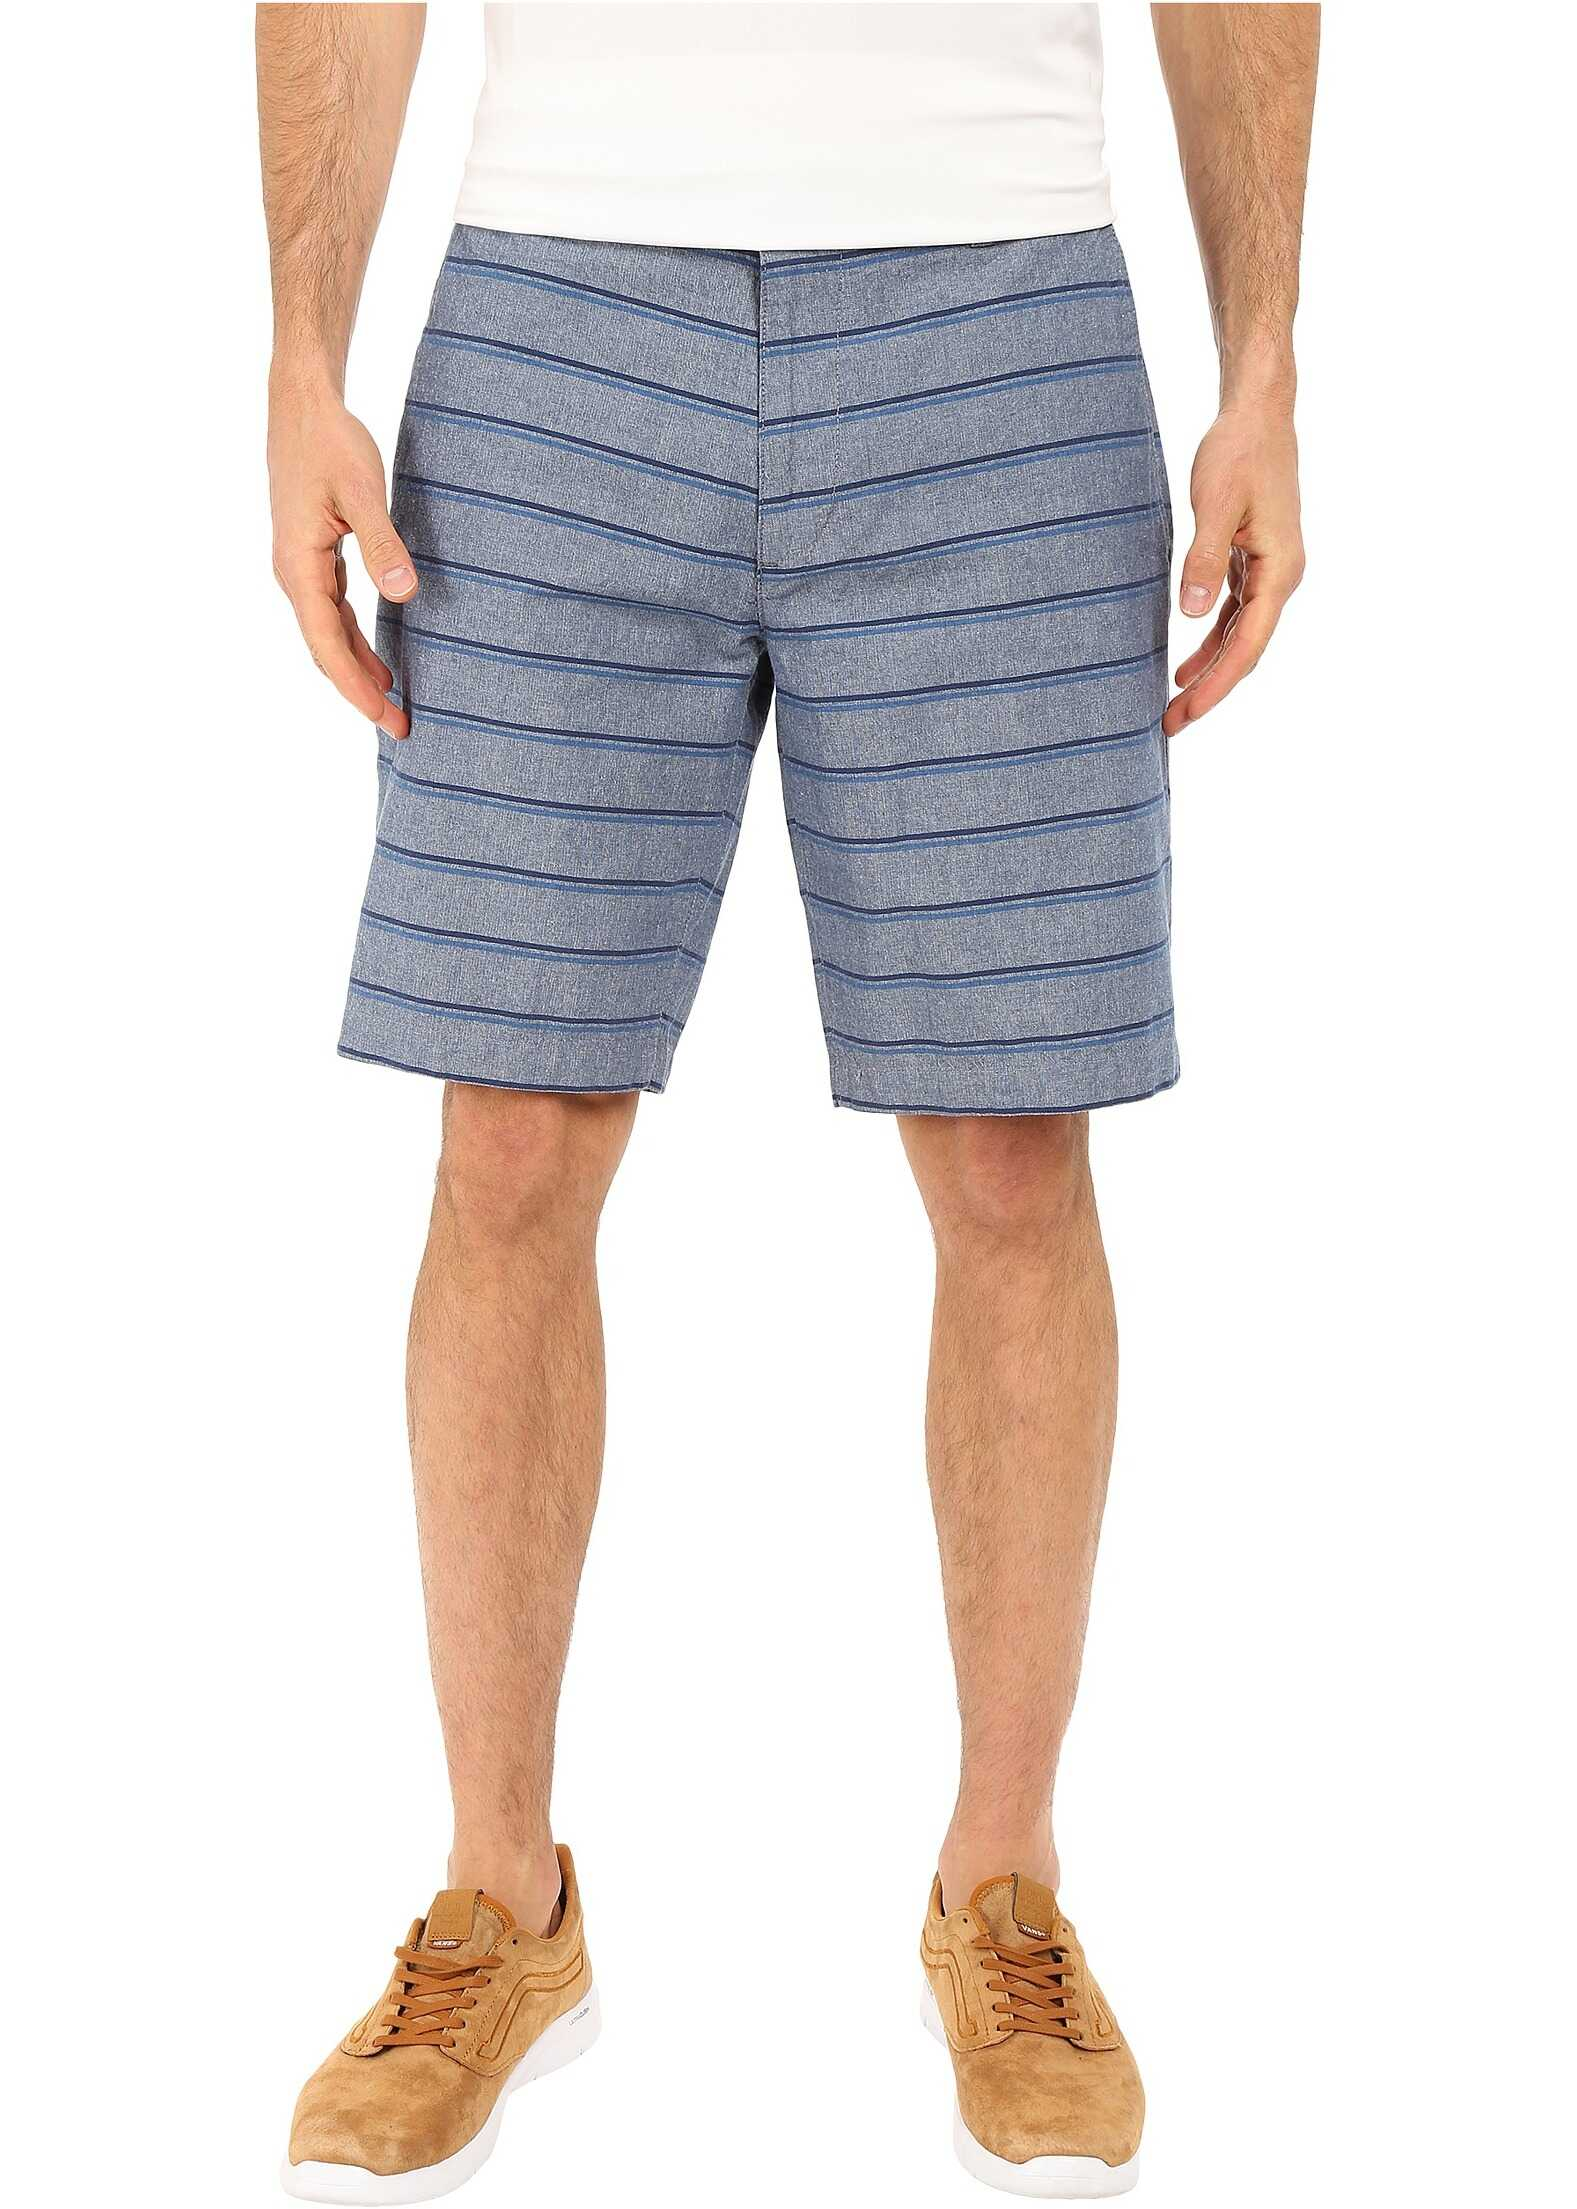 Dockers Perfect Short Classic Fit Flat Front Colton A Blue-Ensign Blue